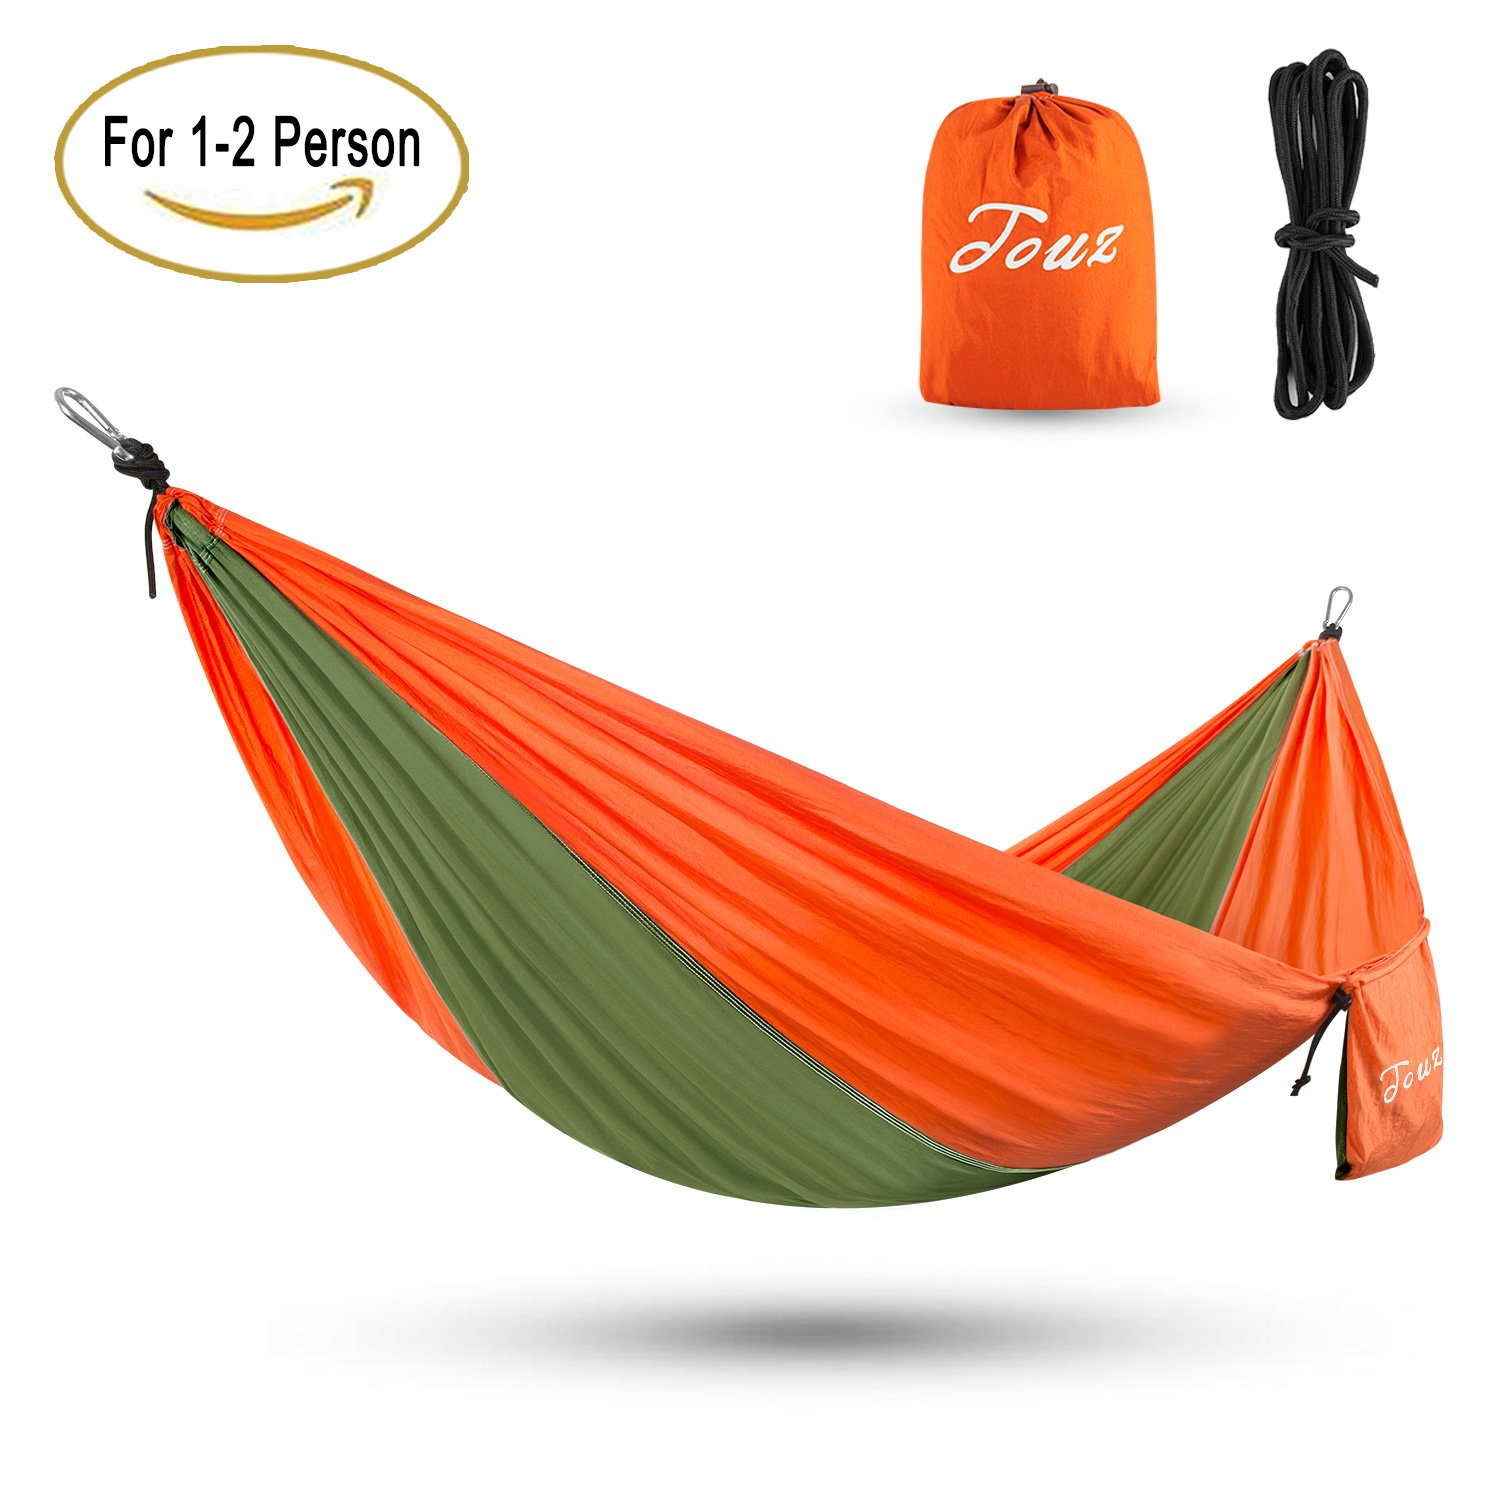 sky fuchsia outfitters backpacking wise colors doubleowl hammocks do carabiners hammock two ropes included owl camping person products blue